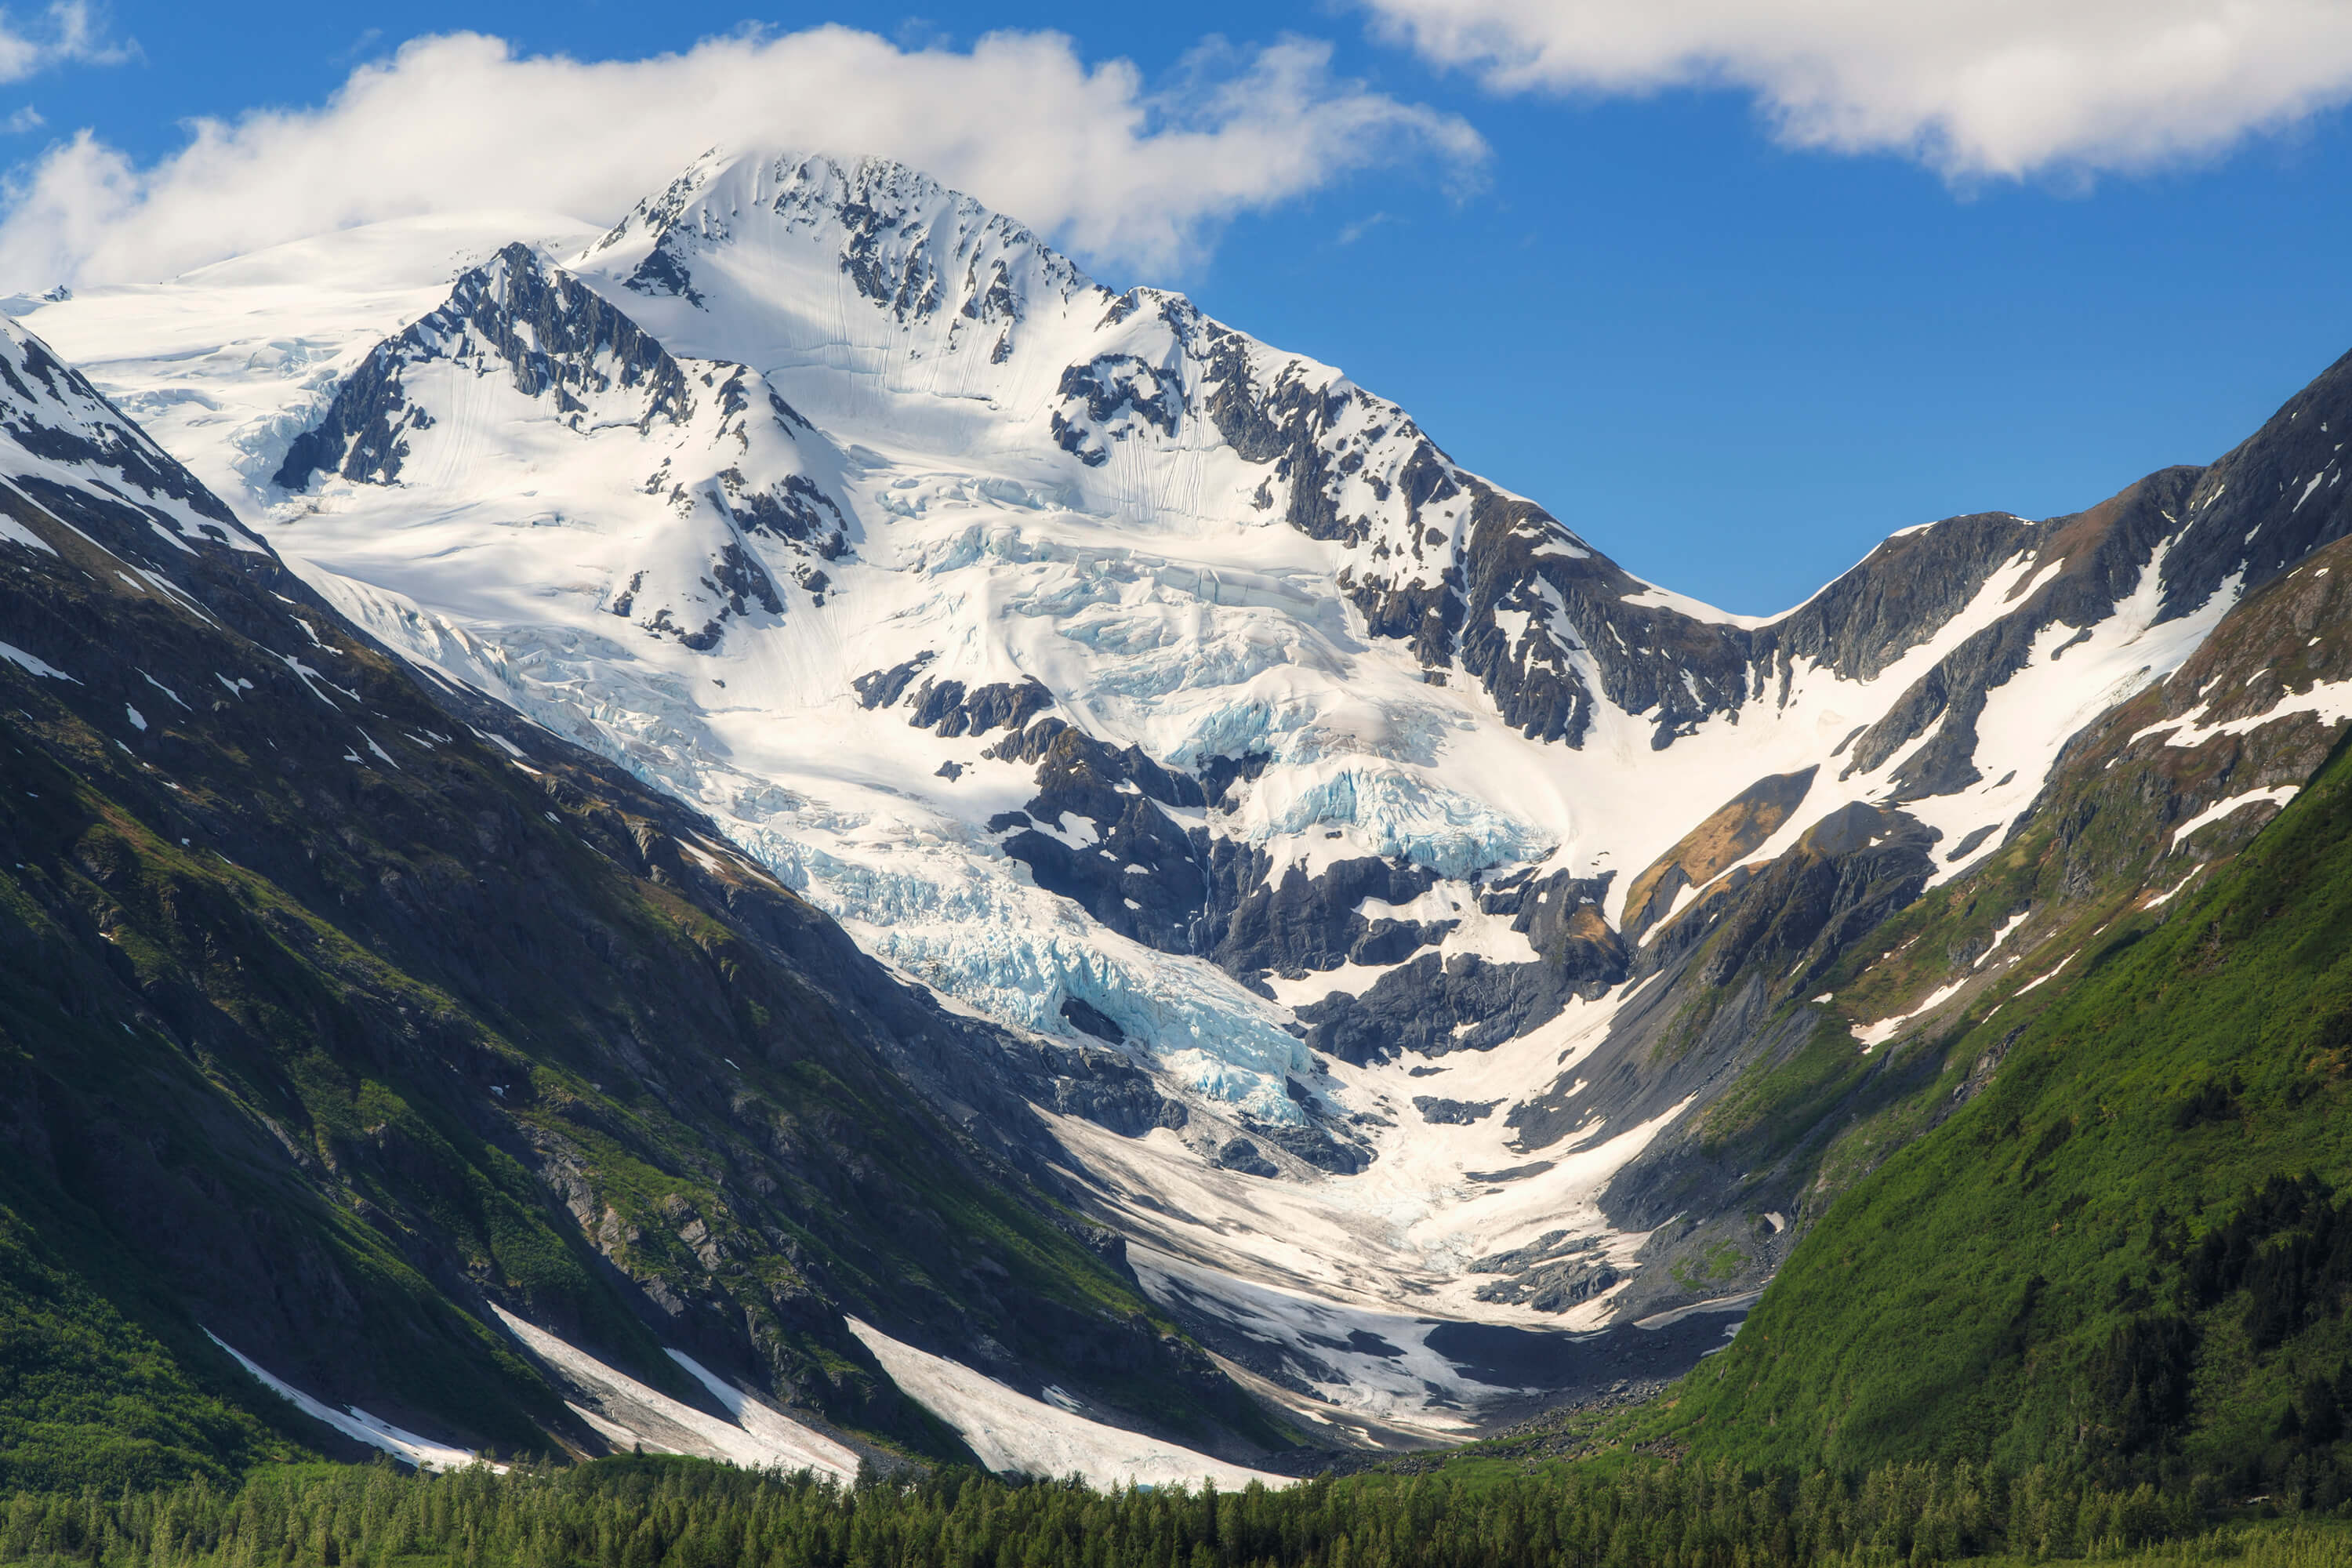 Glacier Ranger District of Chugach National Forest